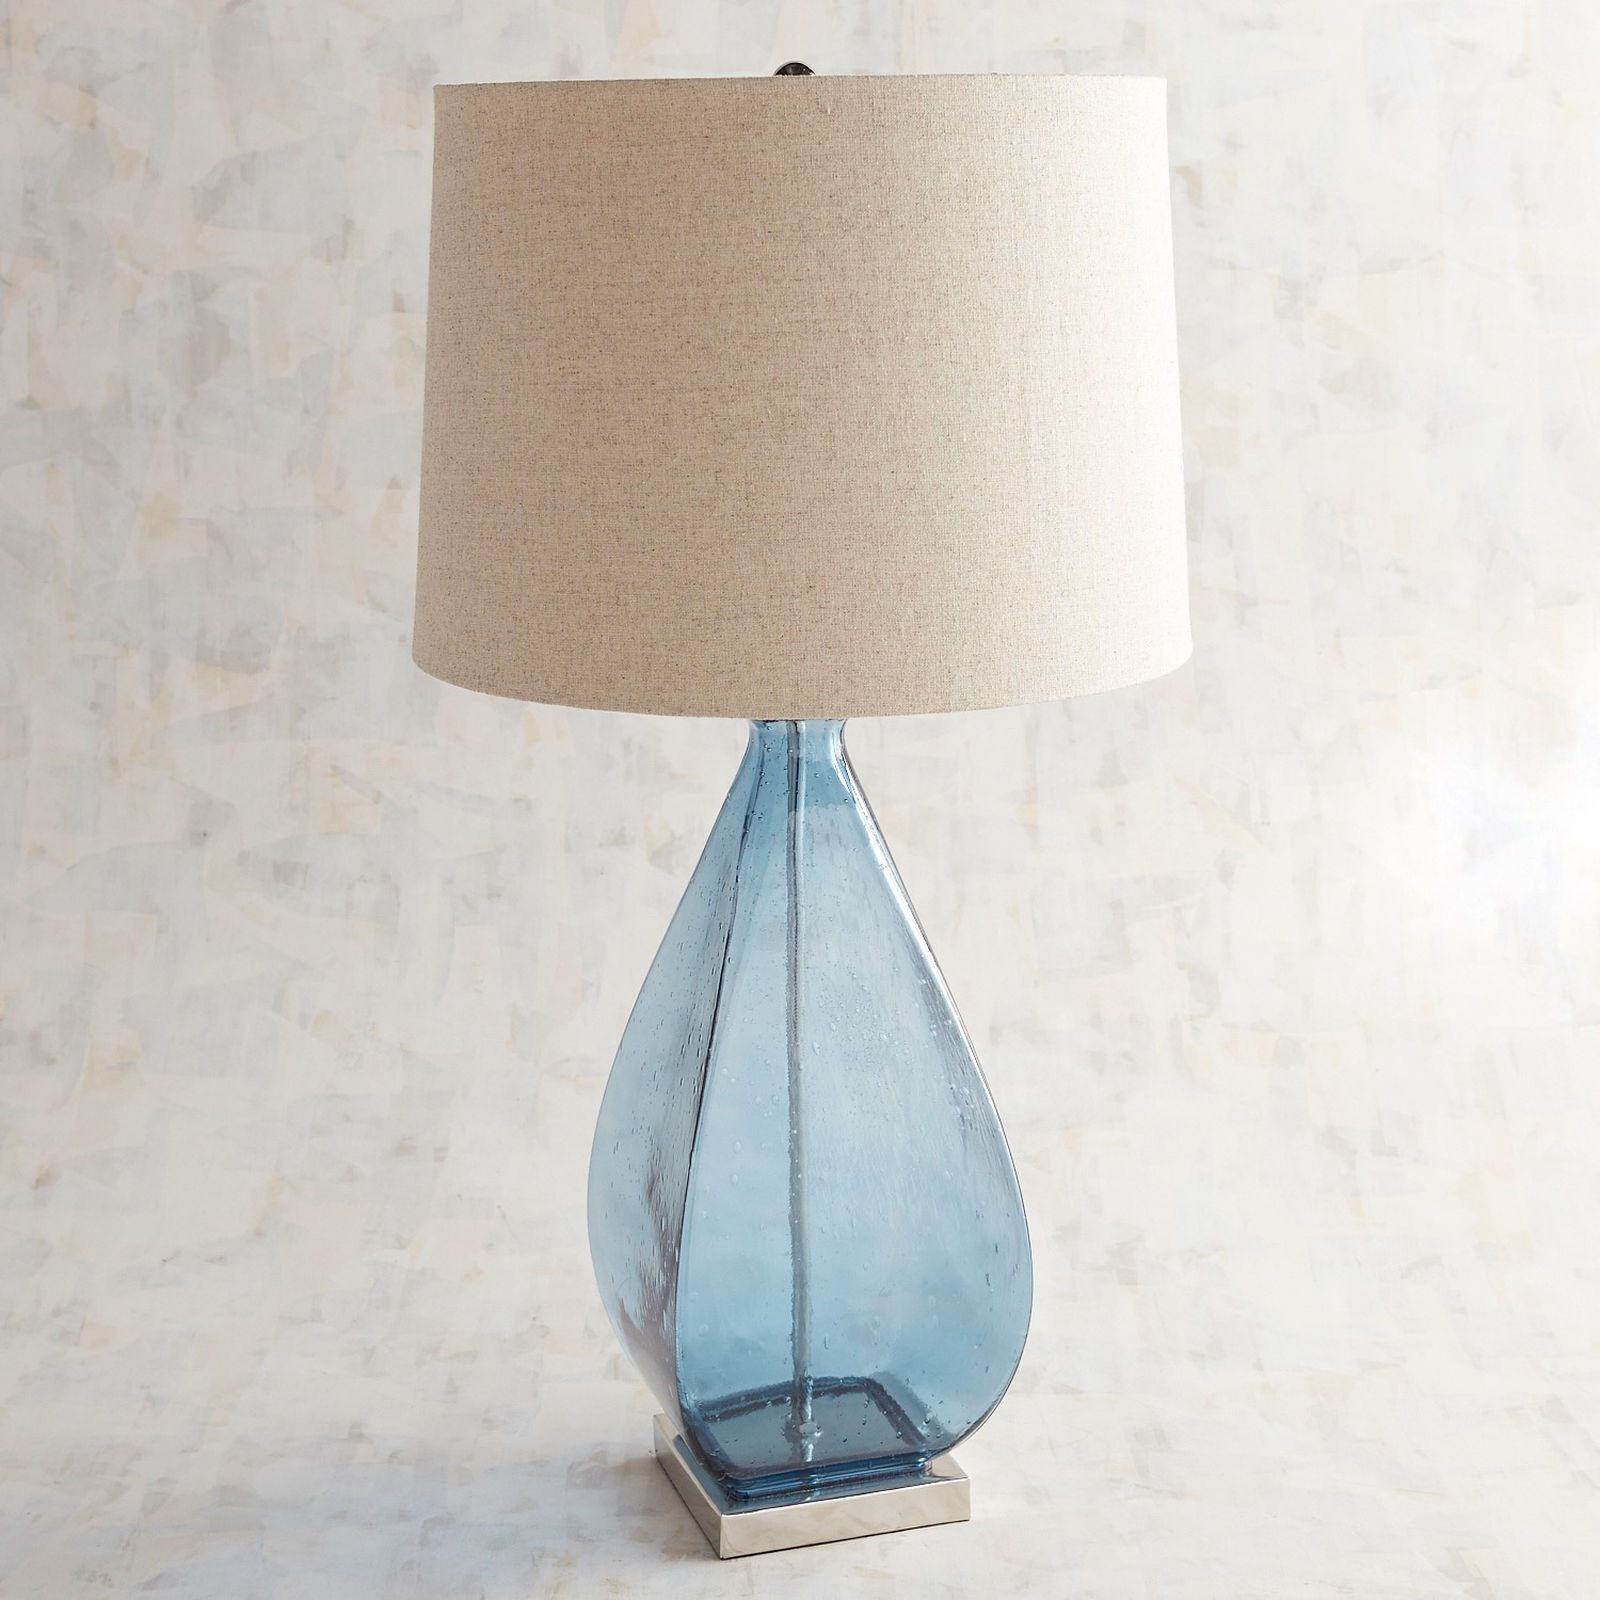 Turn On The Light And Our Doli Lamp S Blue Glass Reveals Tiny Bubbles Of Intriguing Texture Its Graceful Teardrop Shape Glass Table Lamp Blue Table Lamp Lamp